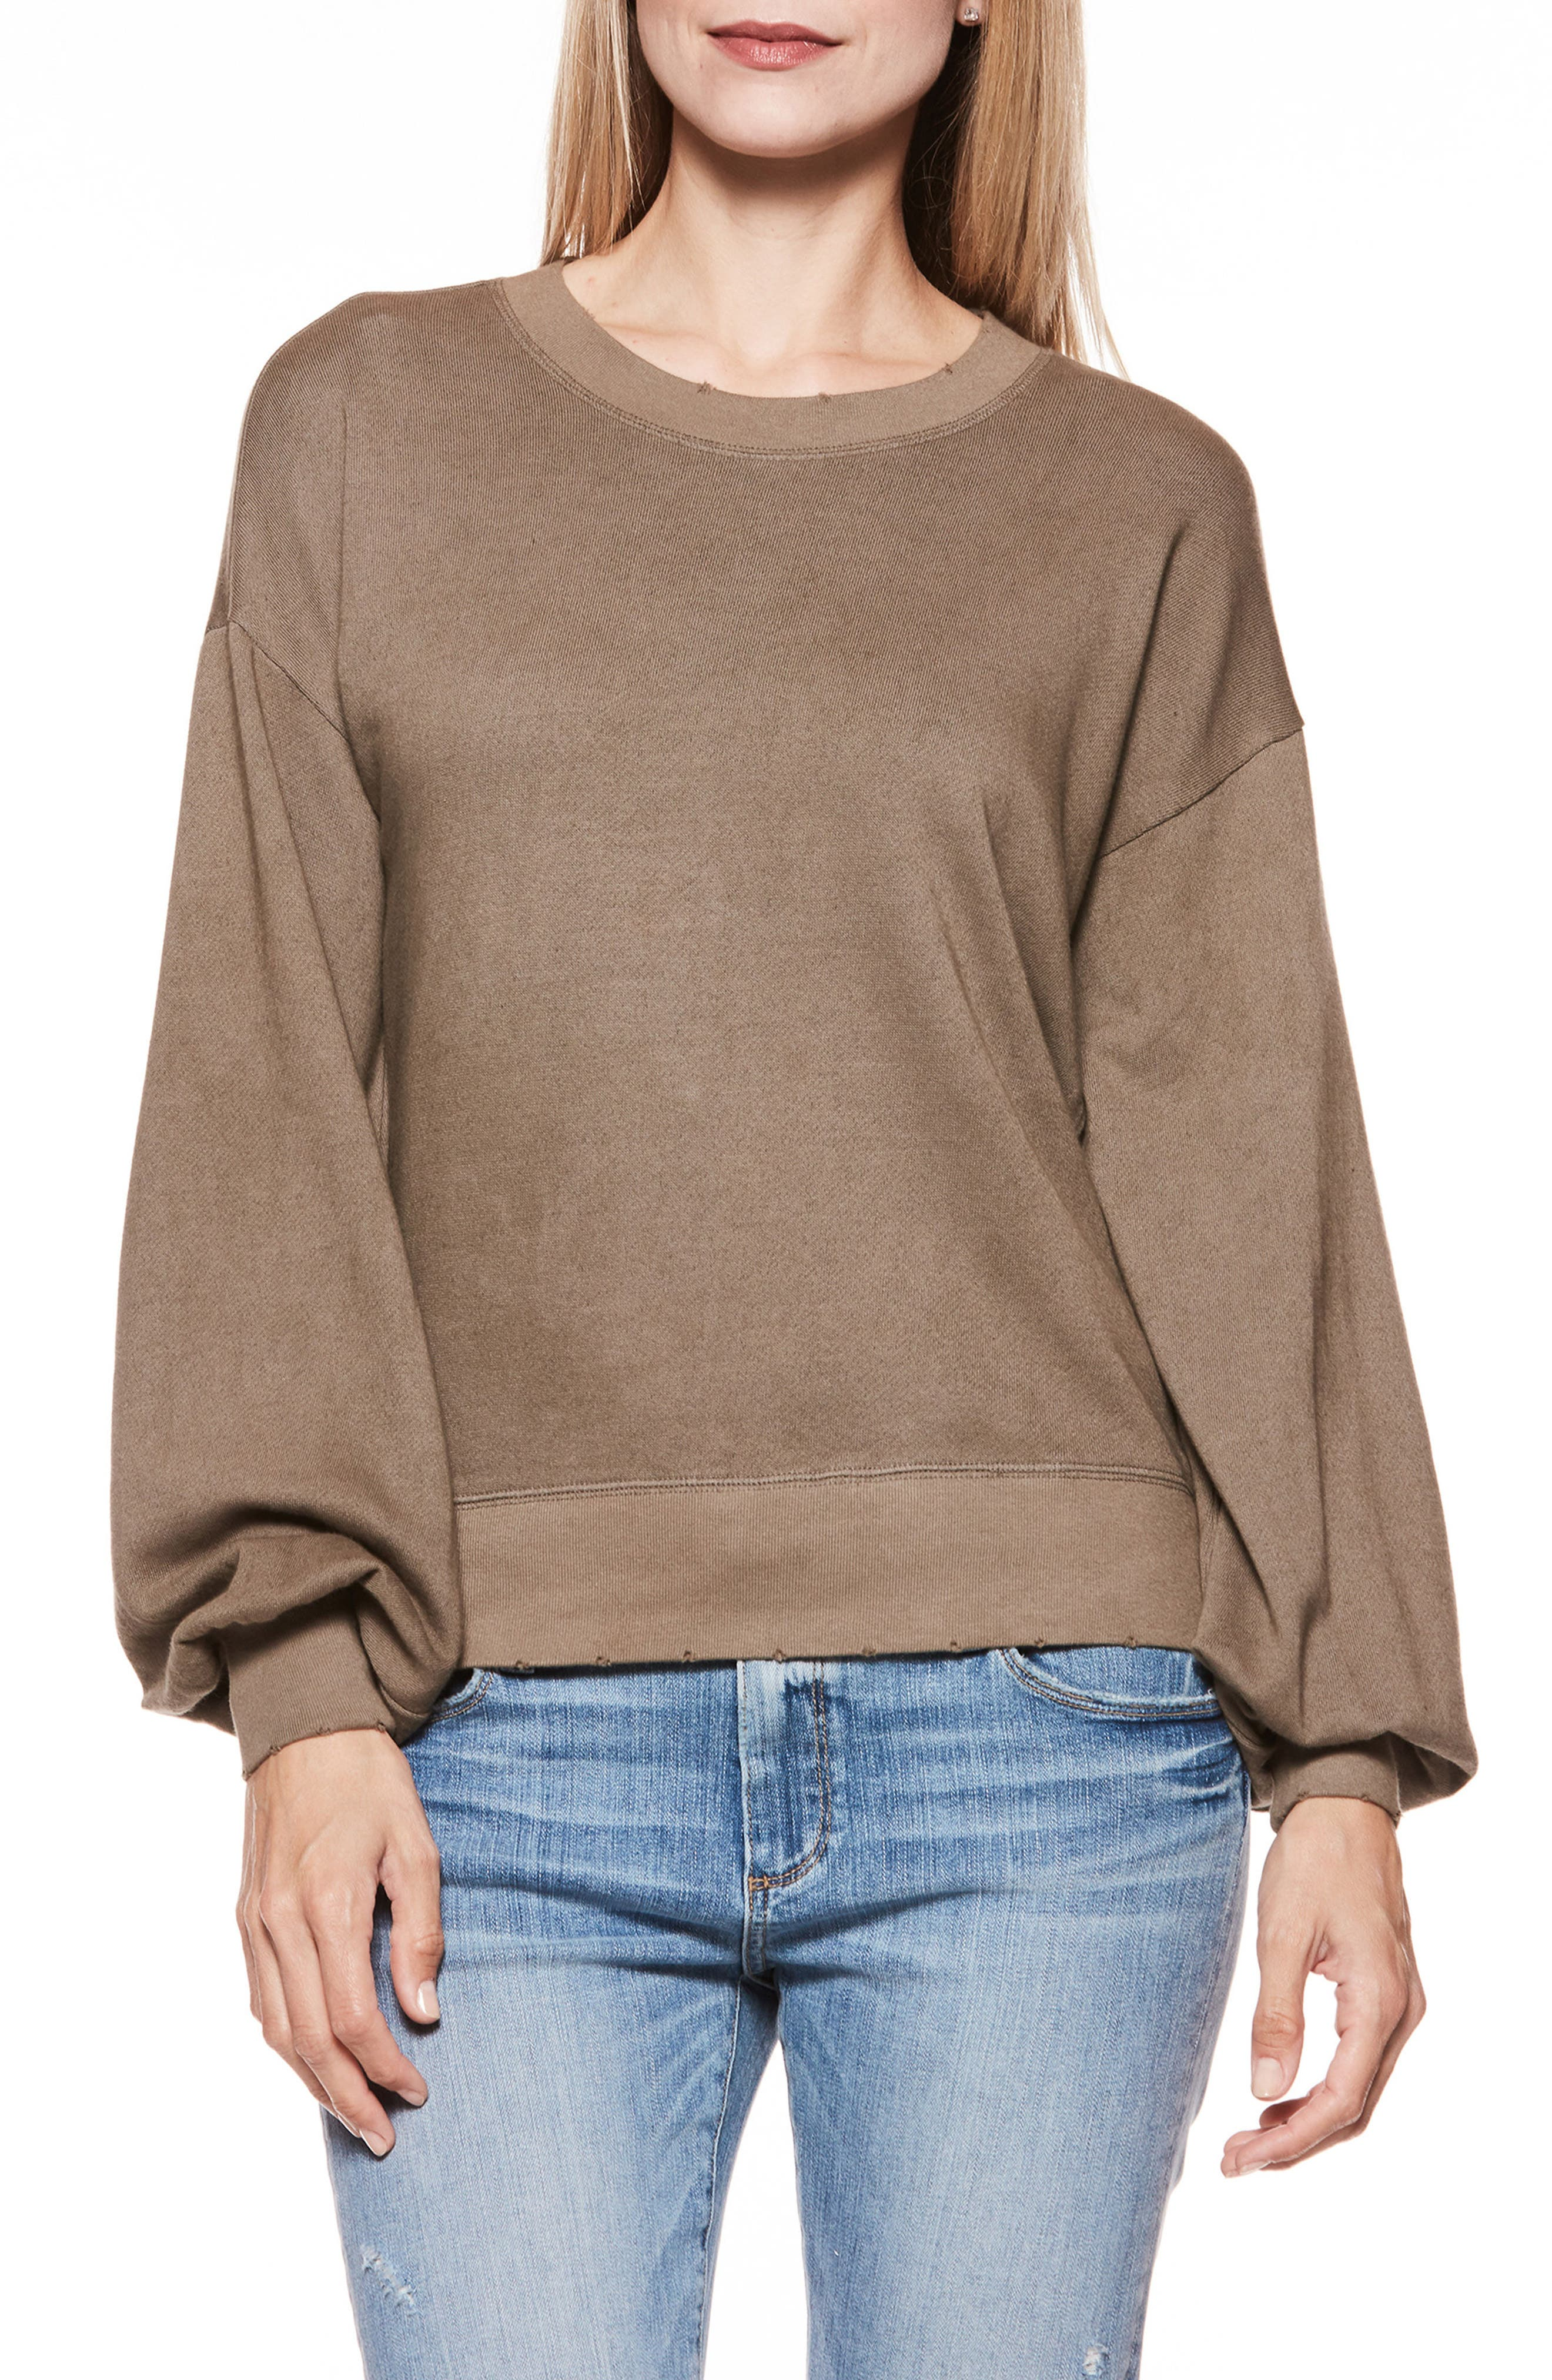 Cortlynn Sweatshirt,                         Main,                         color, TANNED OLIVE